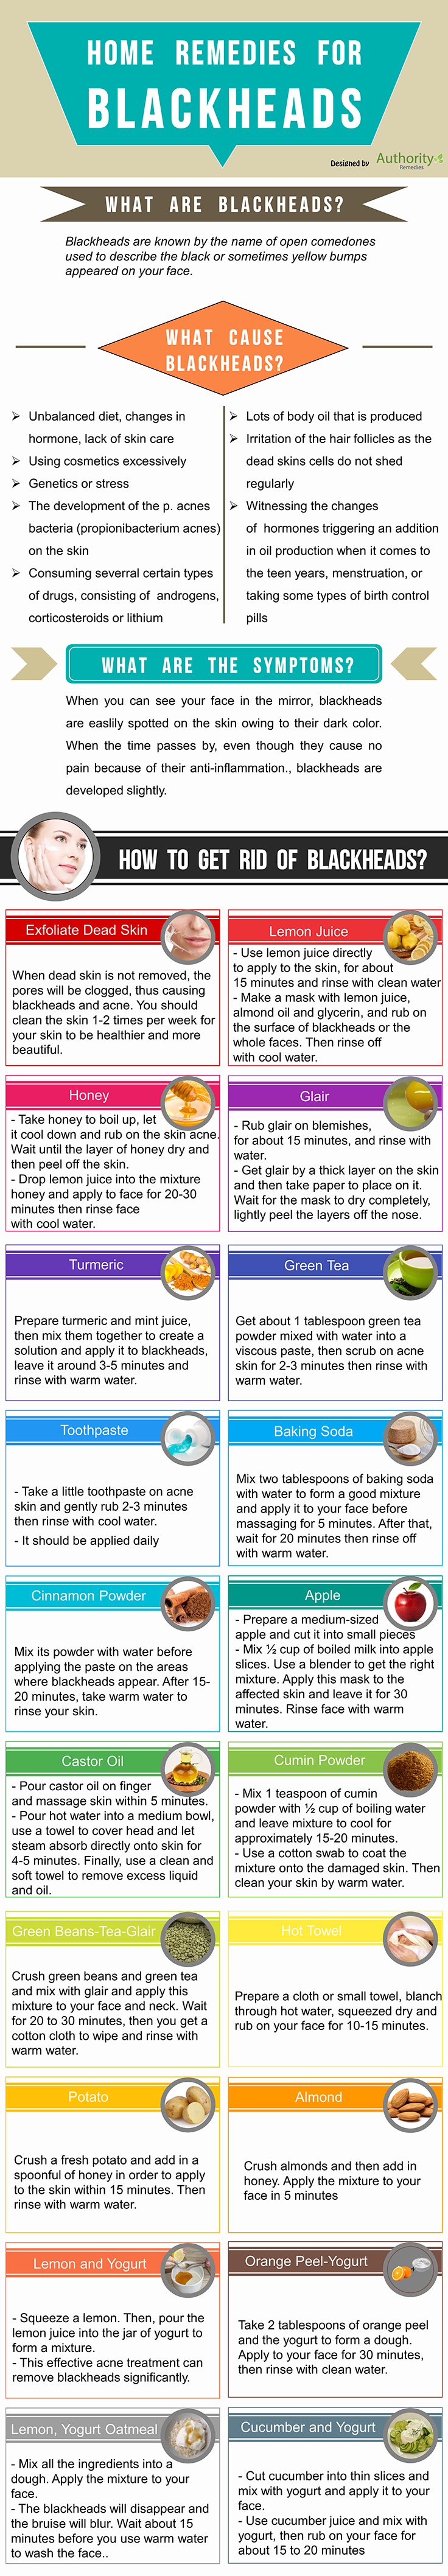 Home Remedies for Blackheads - Infographic